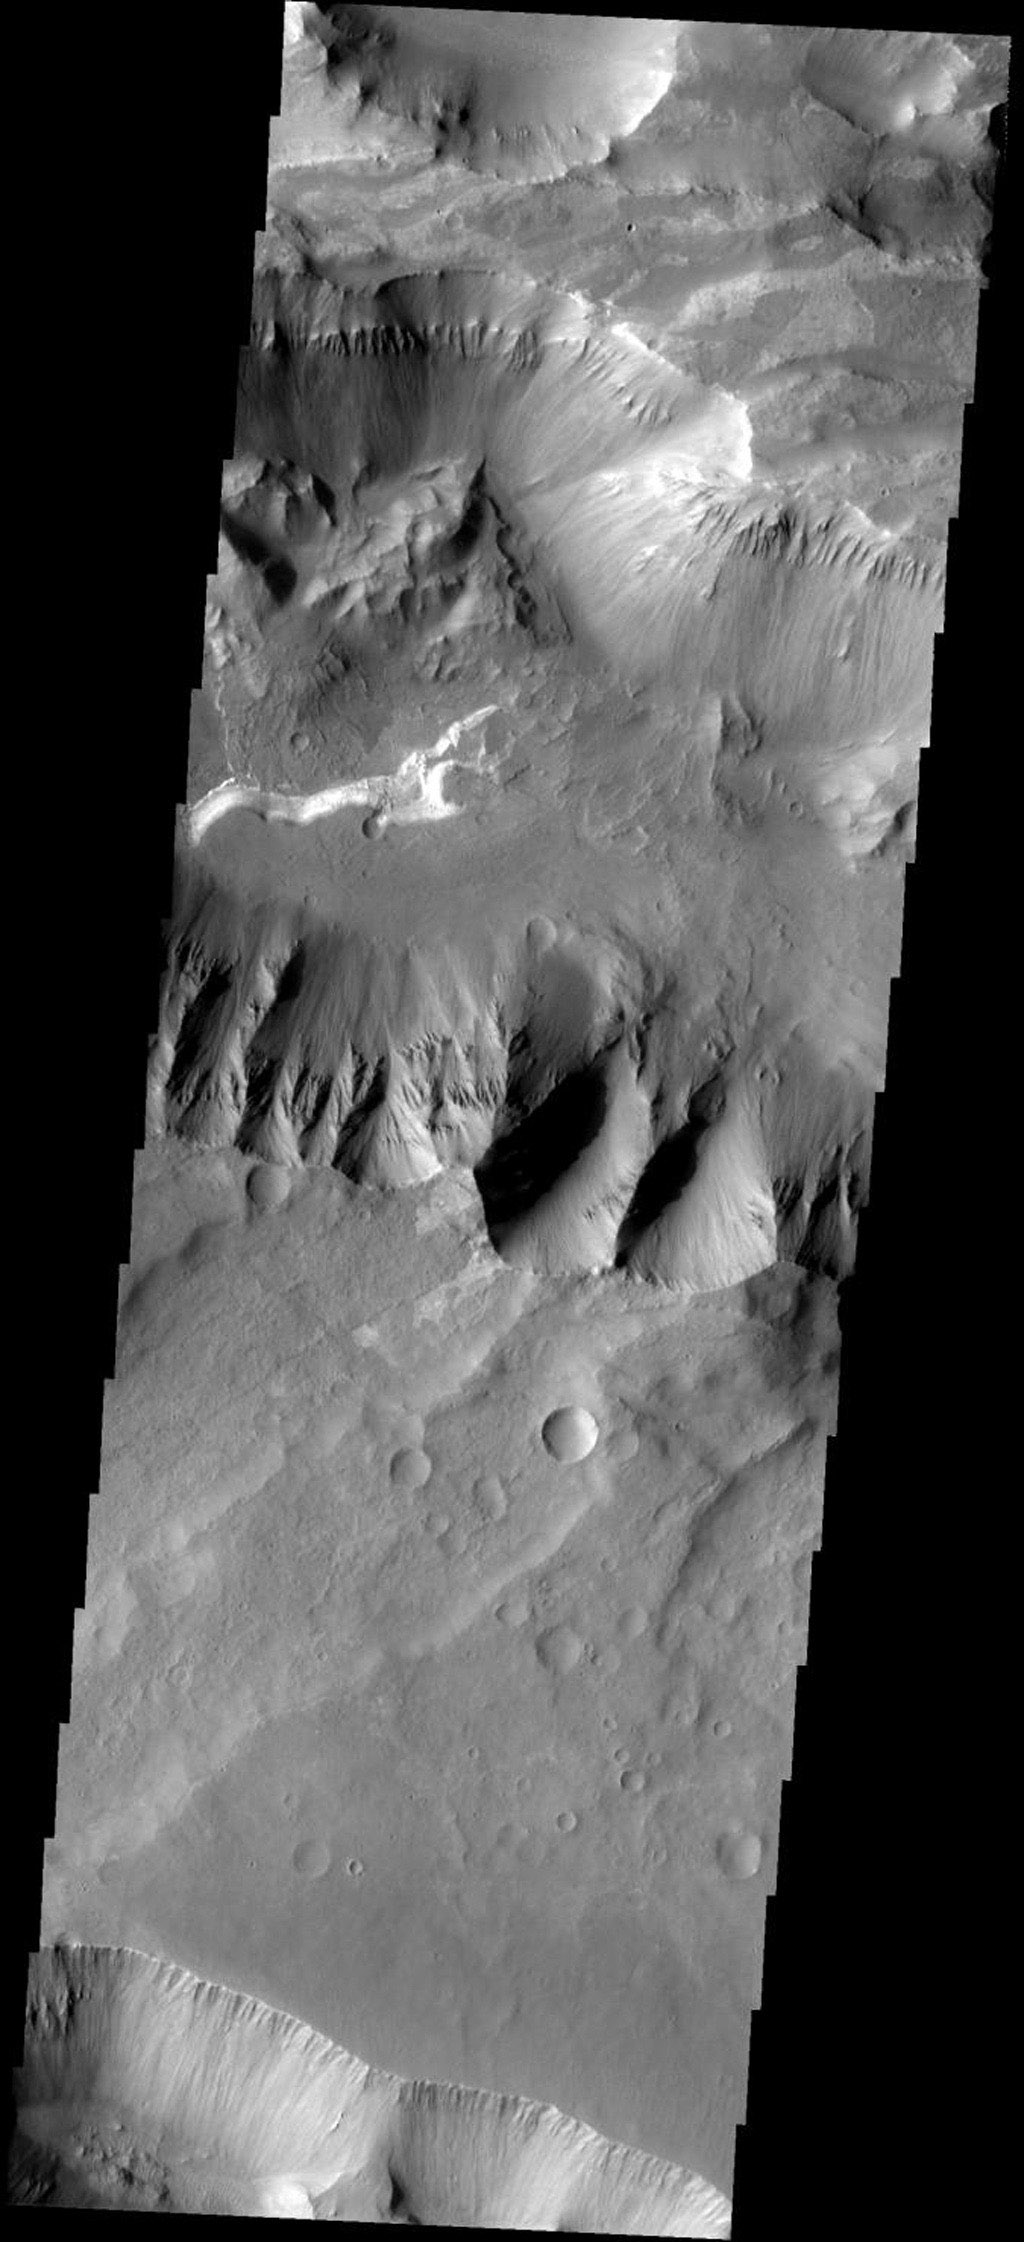 This image shows part of Coprates Chasma on Mars, taken by NASA's Mars 2001 Odyssey spacecraft.